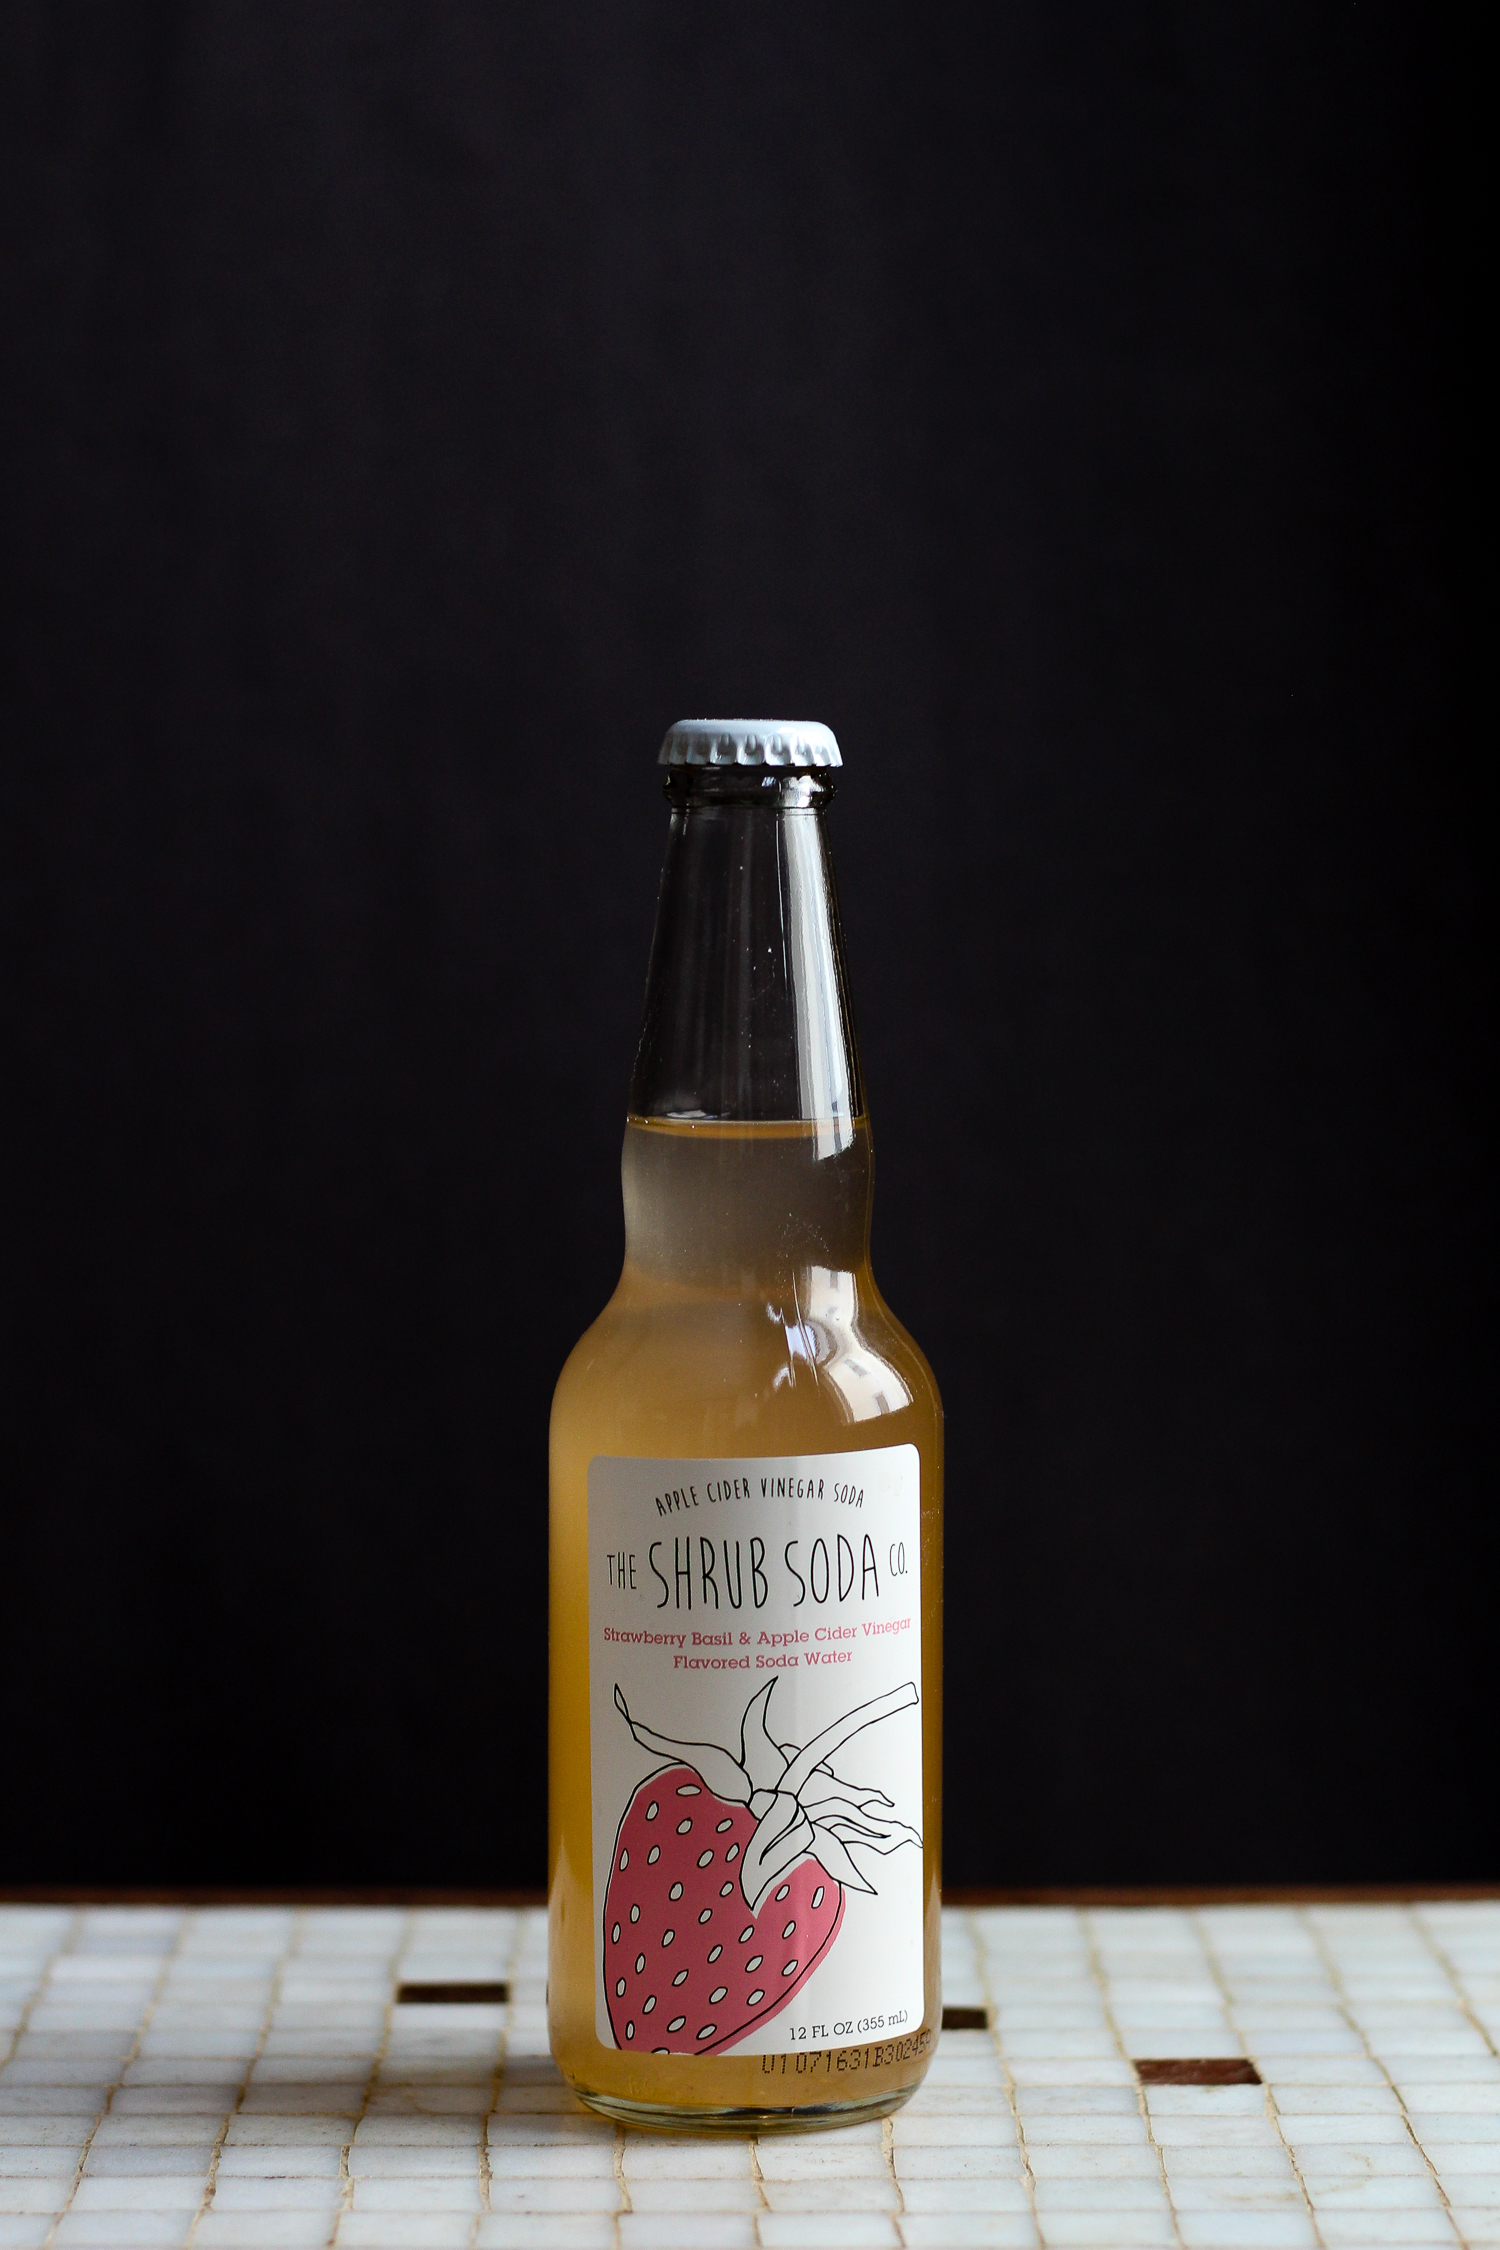 Strawberry, Basil & Apple Cider Vinegar Soda from The Shrub Soda Co. via Worthy Pause